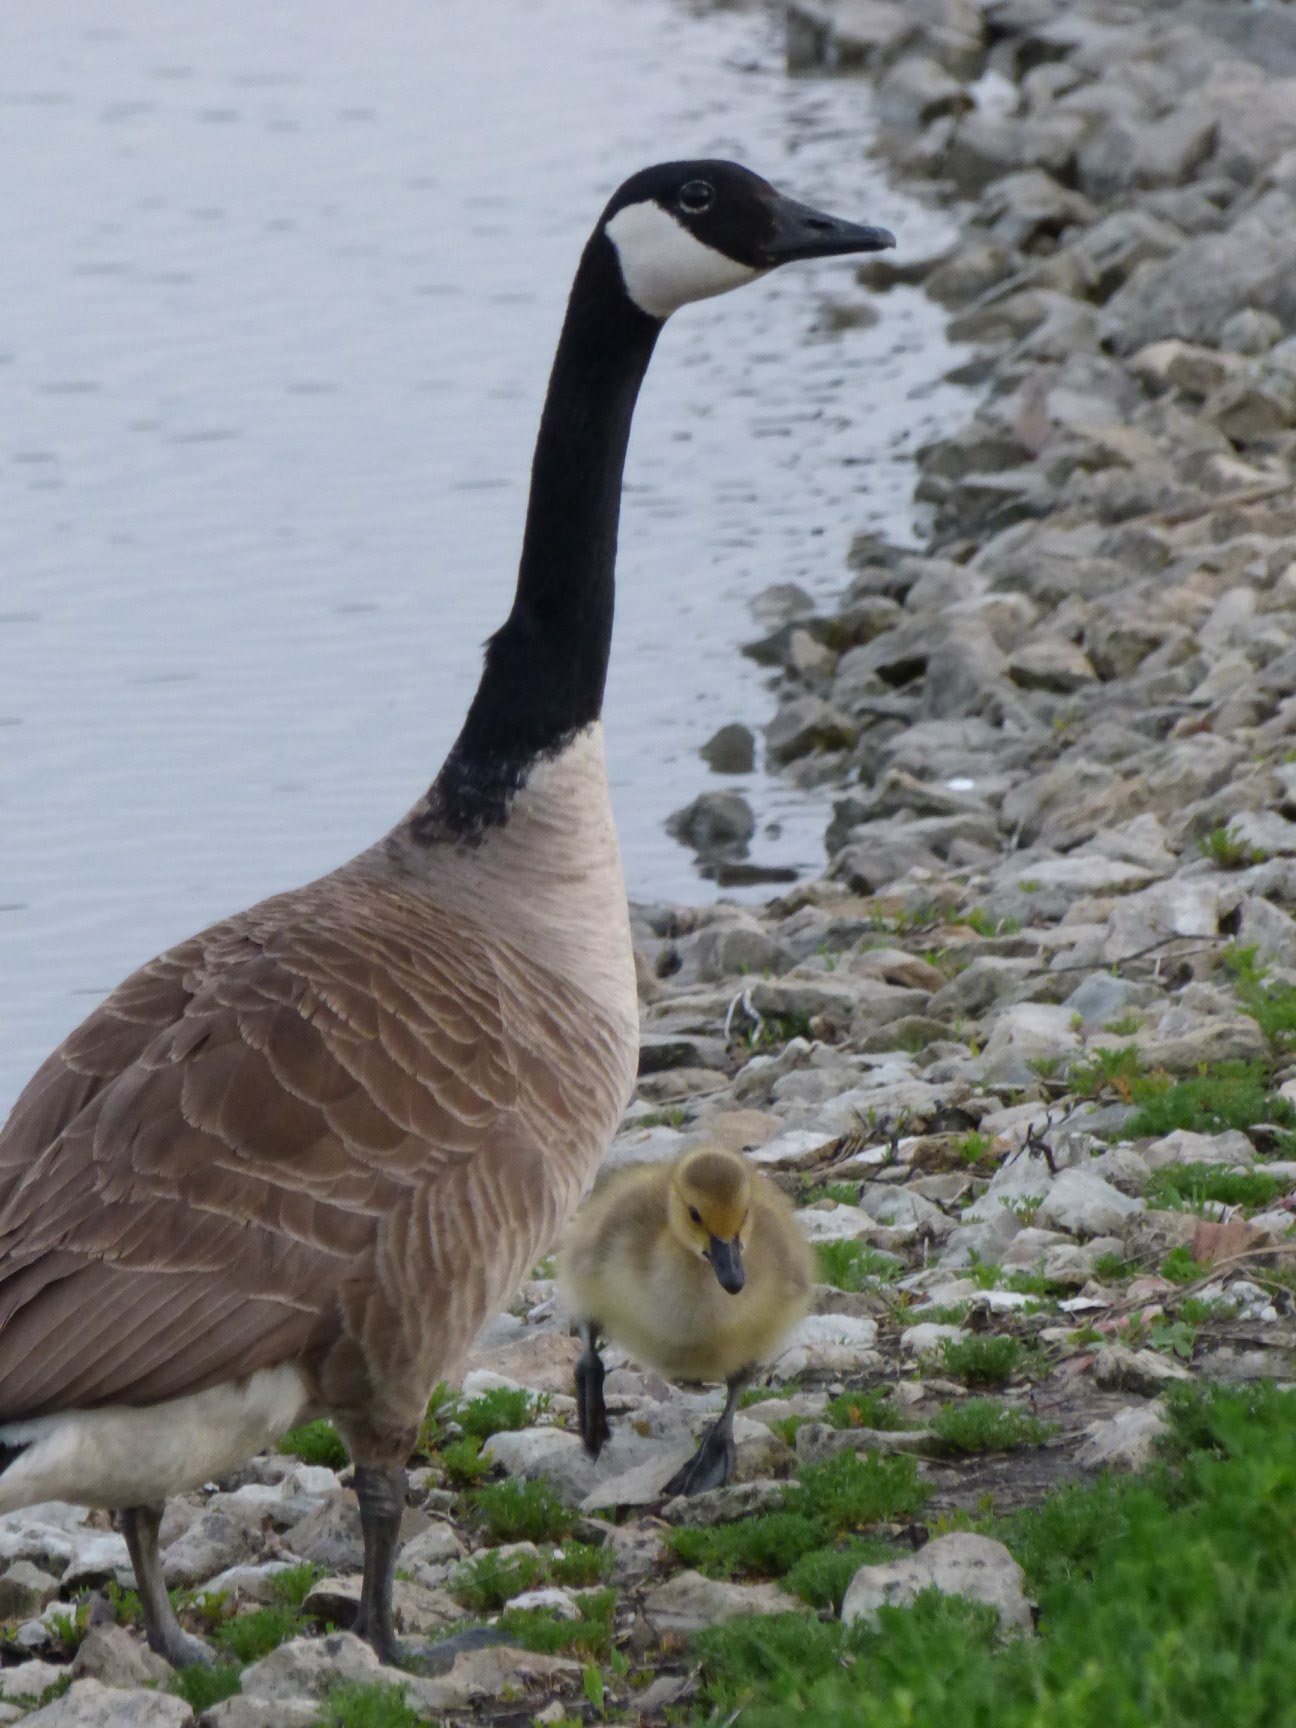 (4/4) Mother and child go out for a waddle. Photo: Amy Scroggins, nature, wildlife, animal, bird, goose, spring